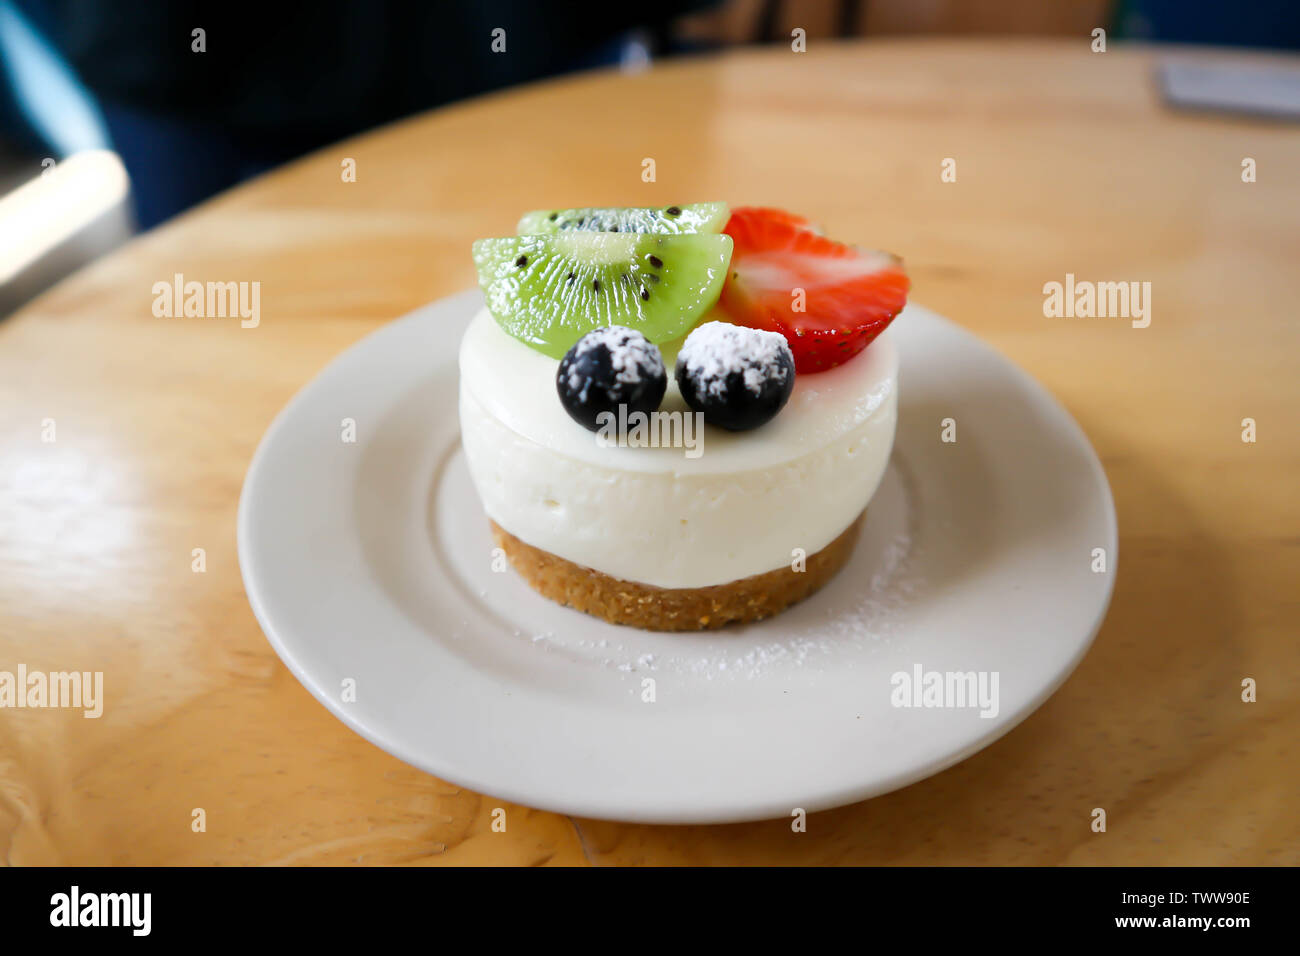 fruit cake or cheese cake with fruit topping - Stock Image